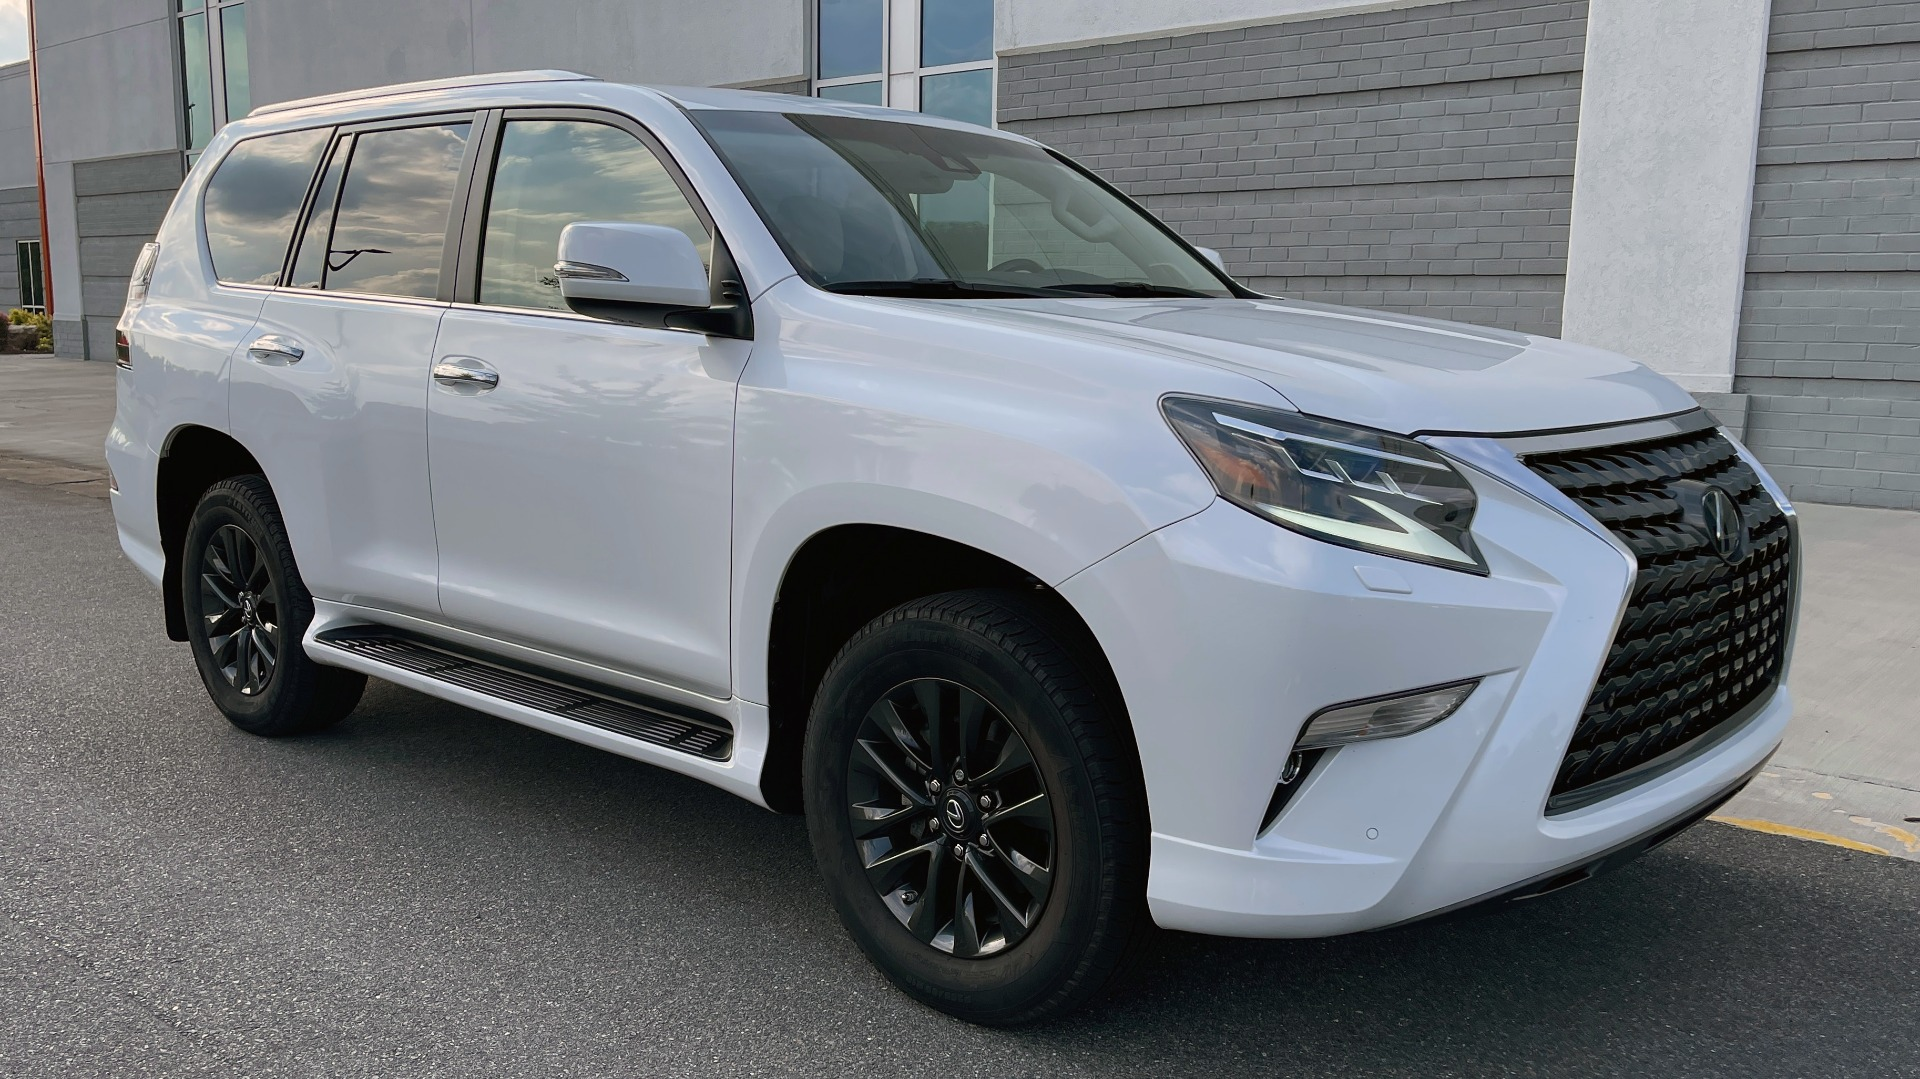 Used 2020 Lexus GX 460 PREMIUM / AWD / NAV / SUNROOF / 3-ROW / REARVIEW for sale $54,495 at Formula Imports in Charlotte NC 28227 6